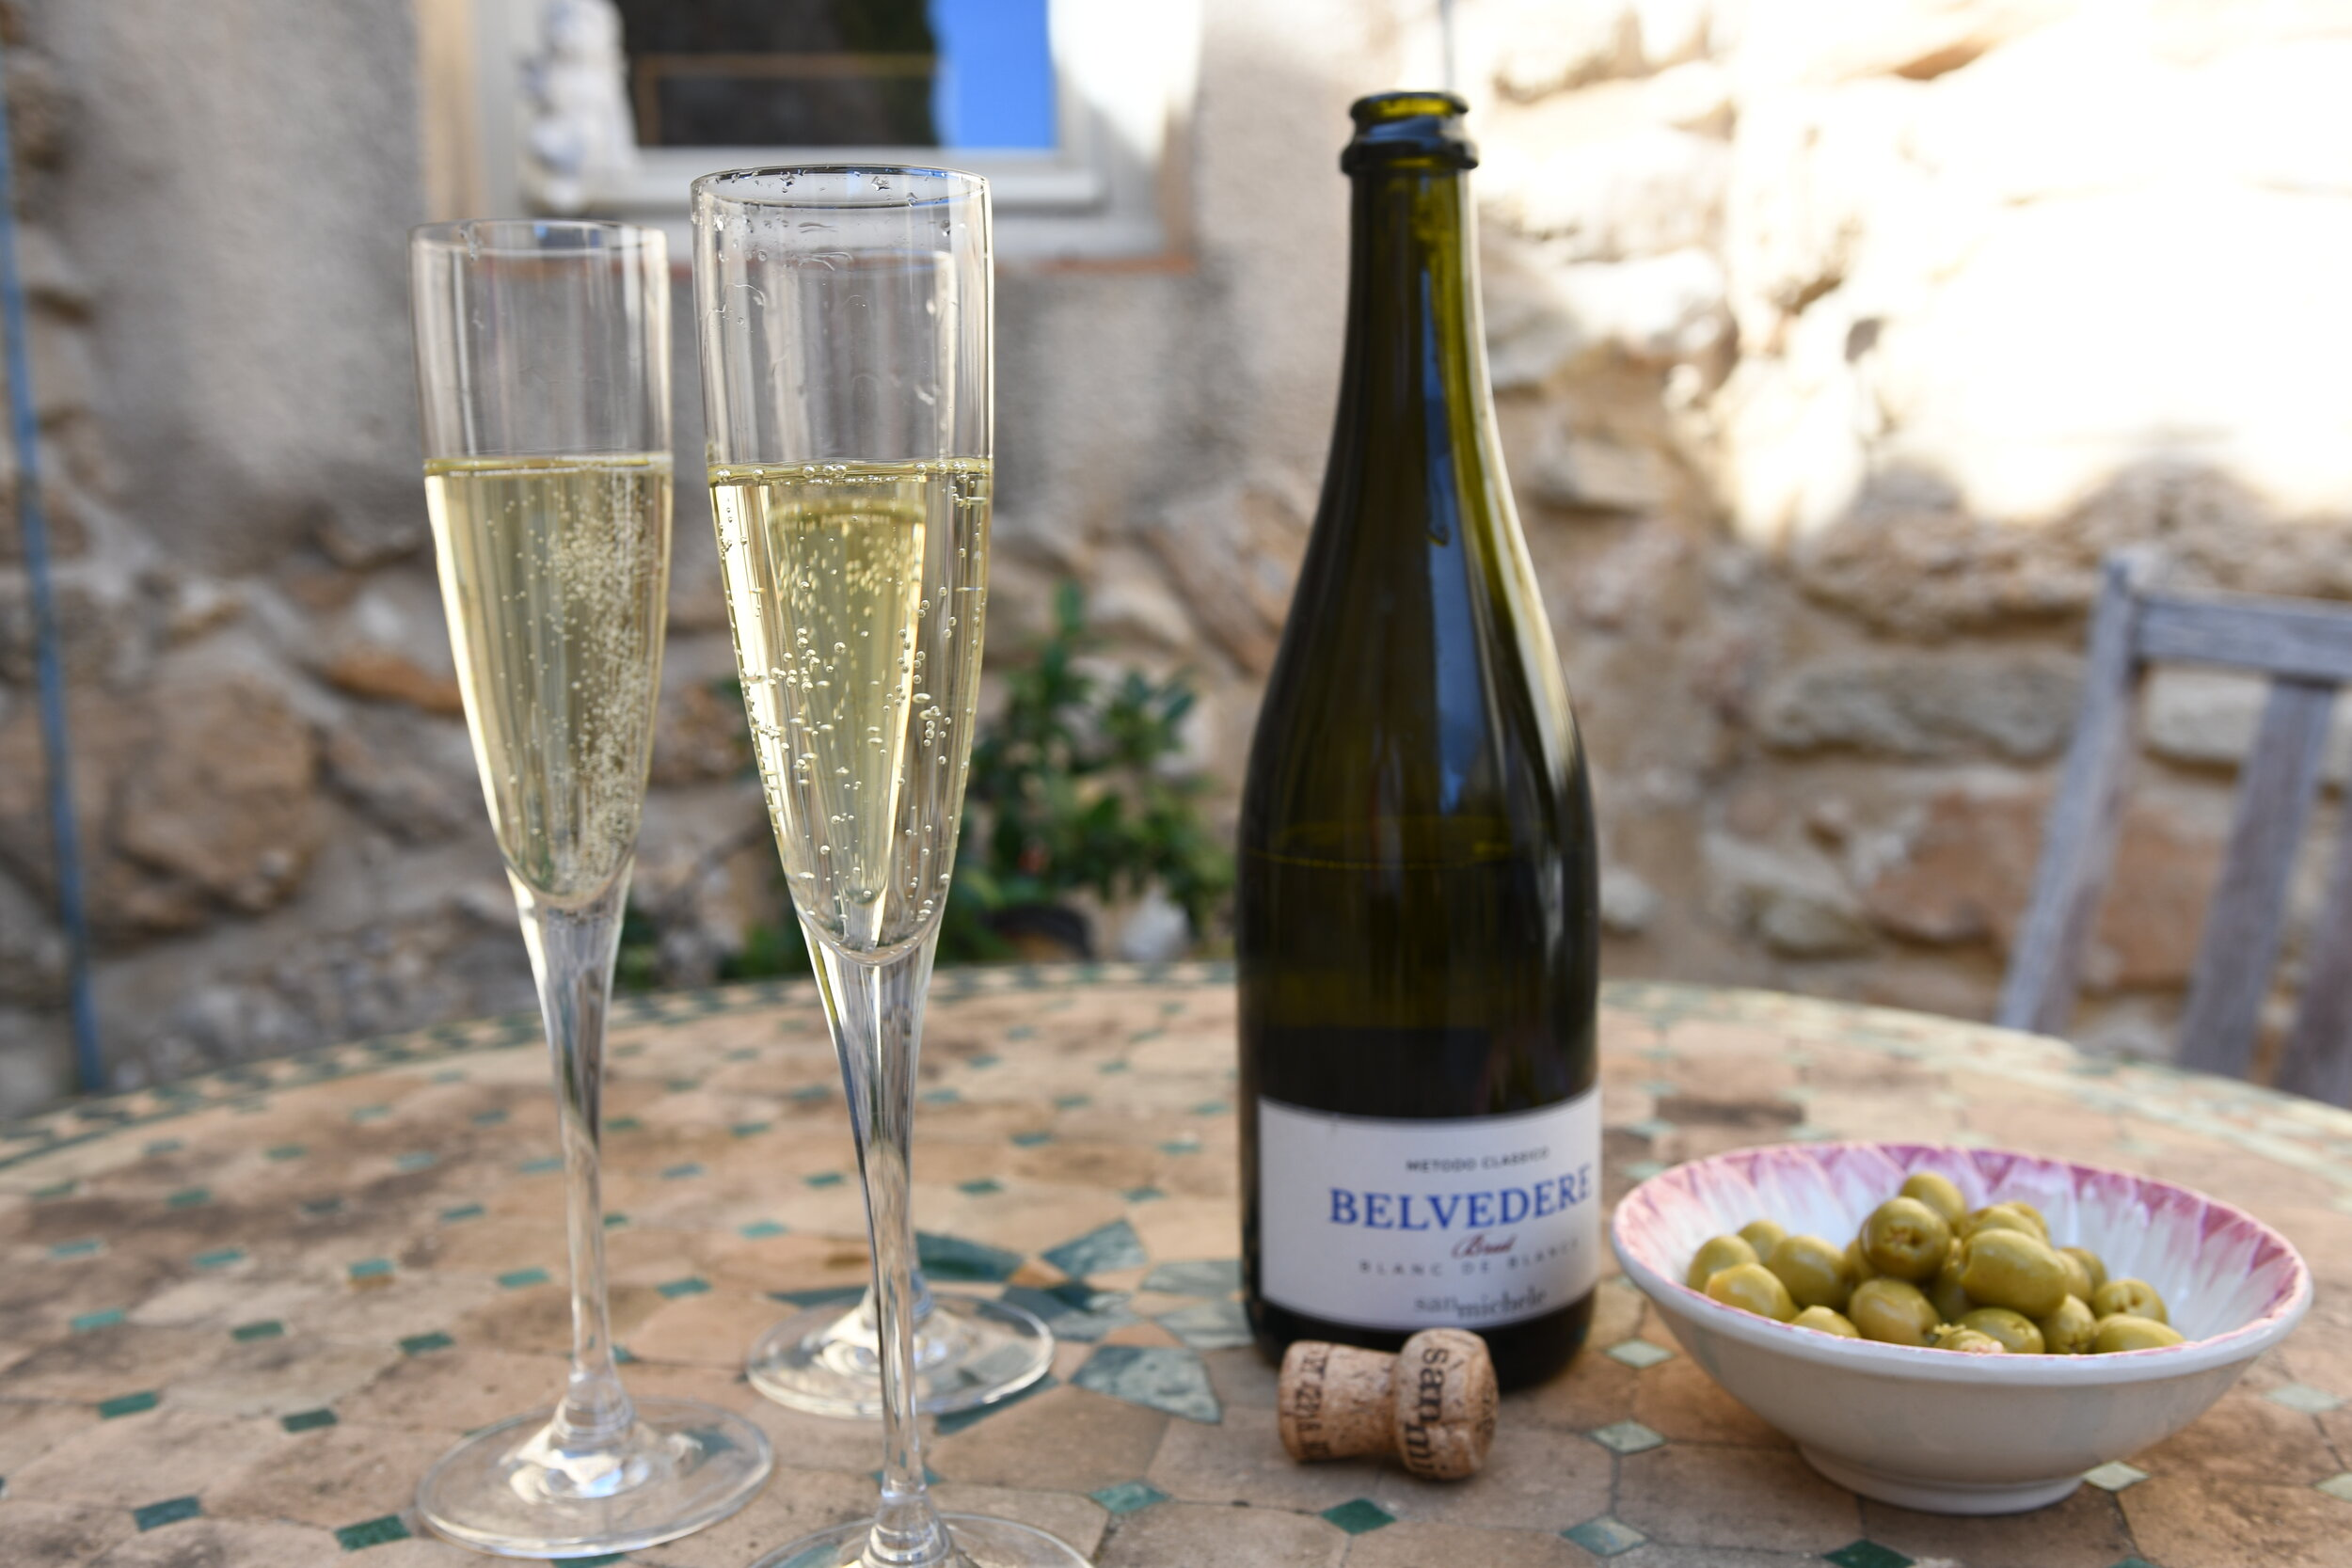 Champagne for lunch - My Crazy Blonde trip to France